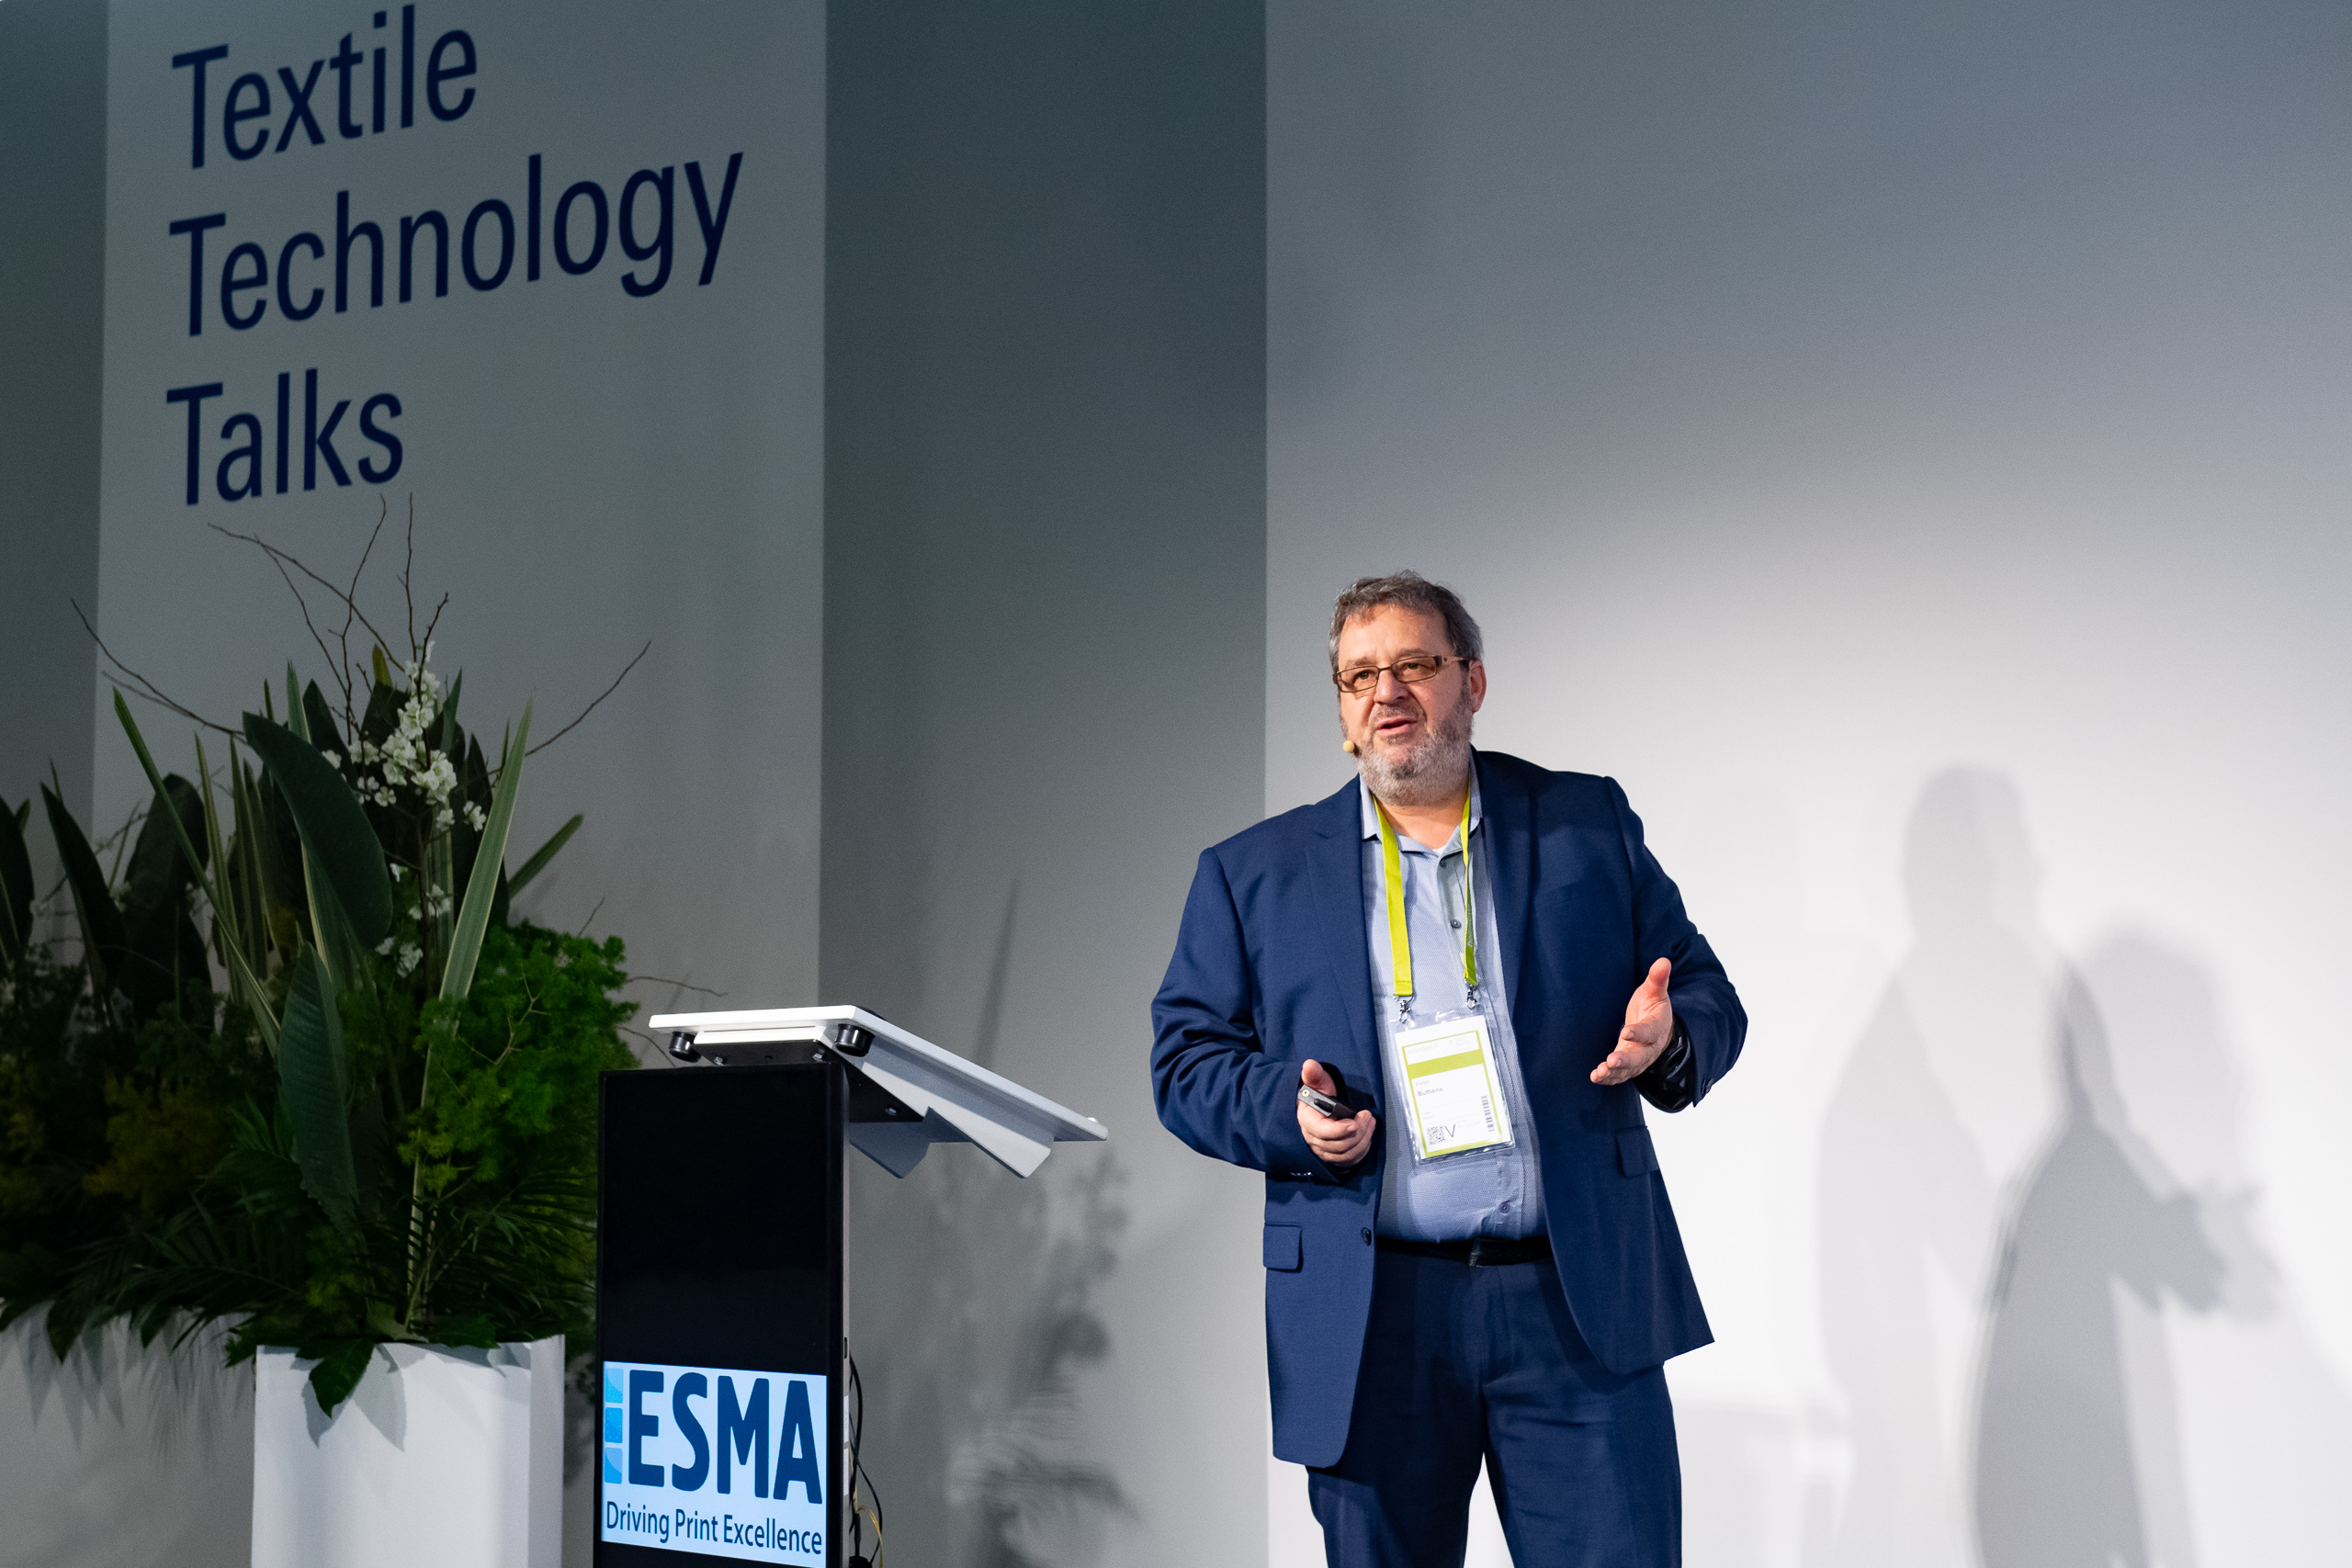 Textile Technology Talks, Peter Buttiens ESMA General Manager